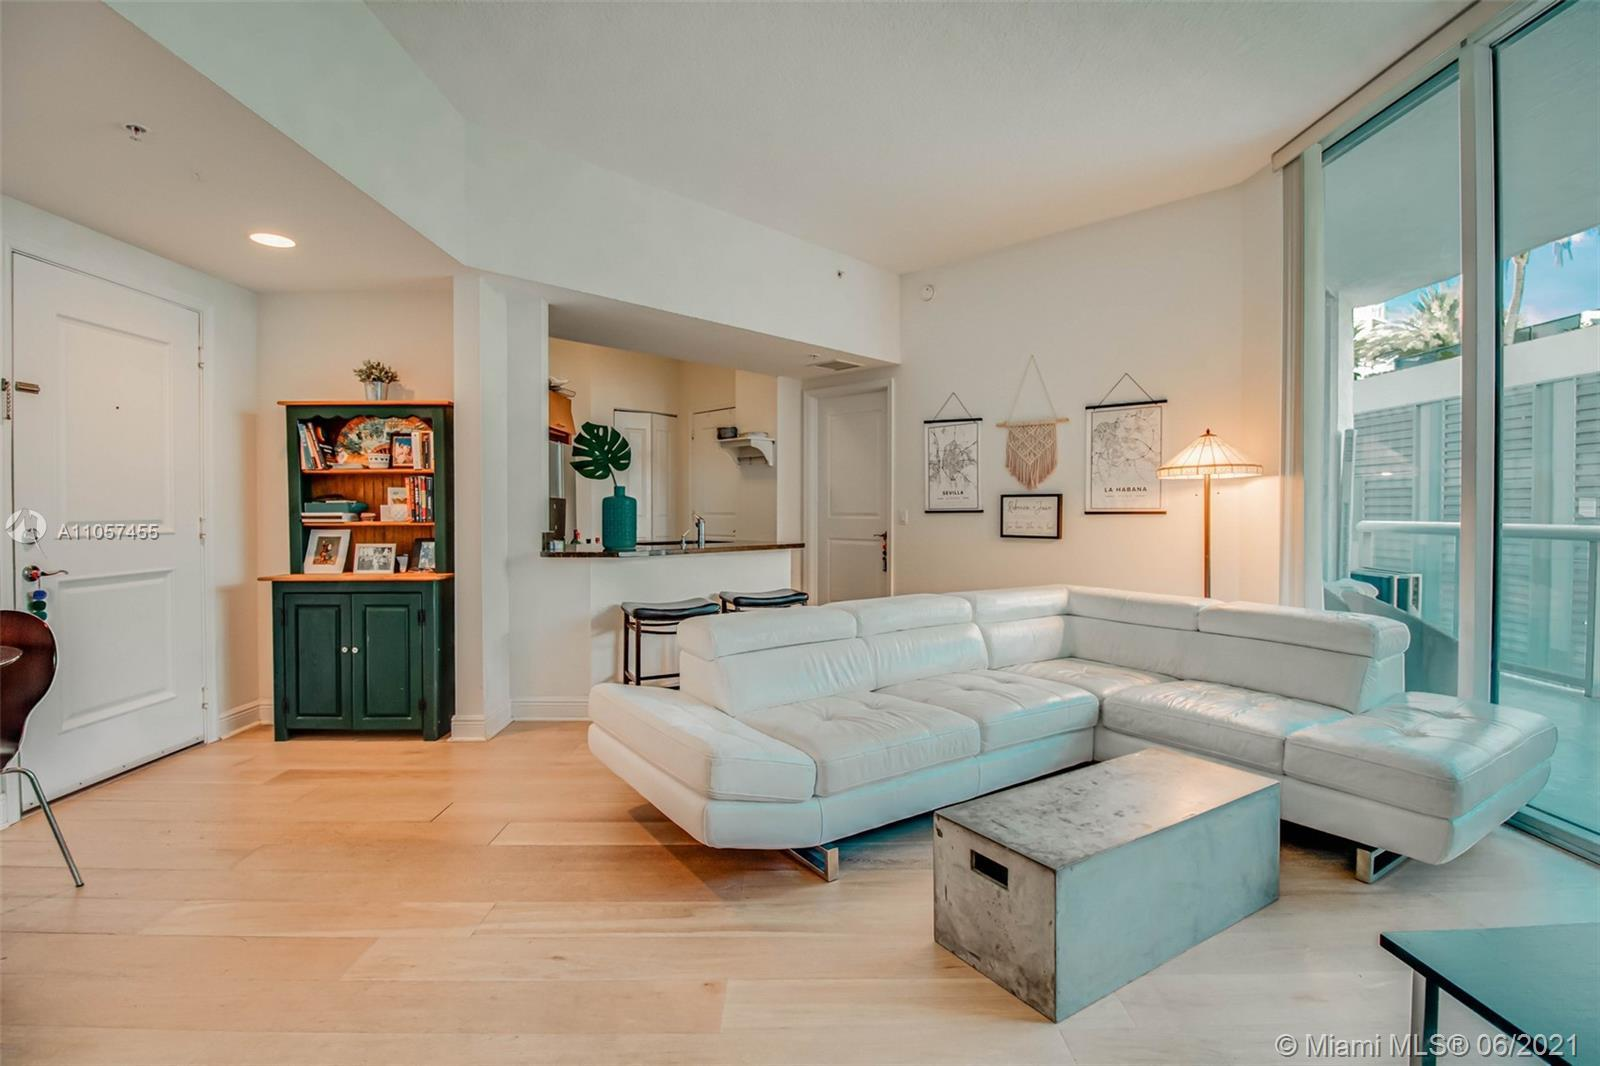 Live limitlessly in this delightful 6th floor unit at The Platinum Edgewater. This classic 2 bedroom